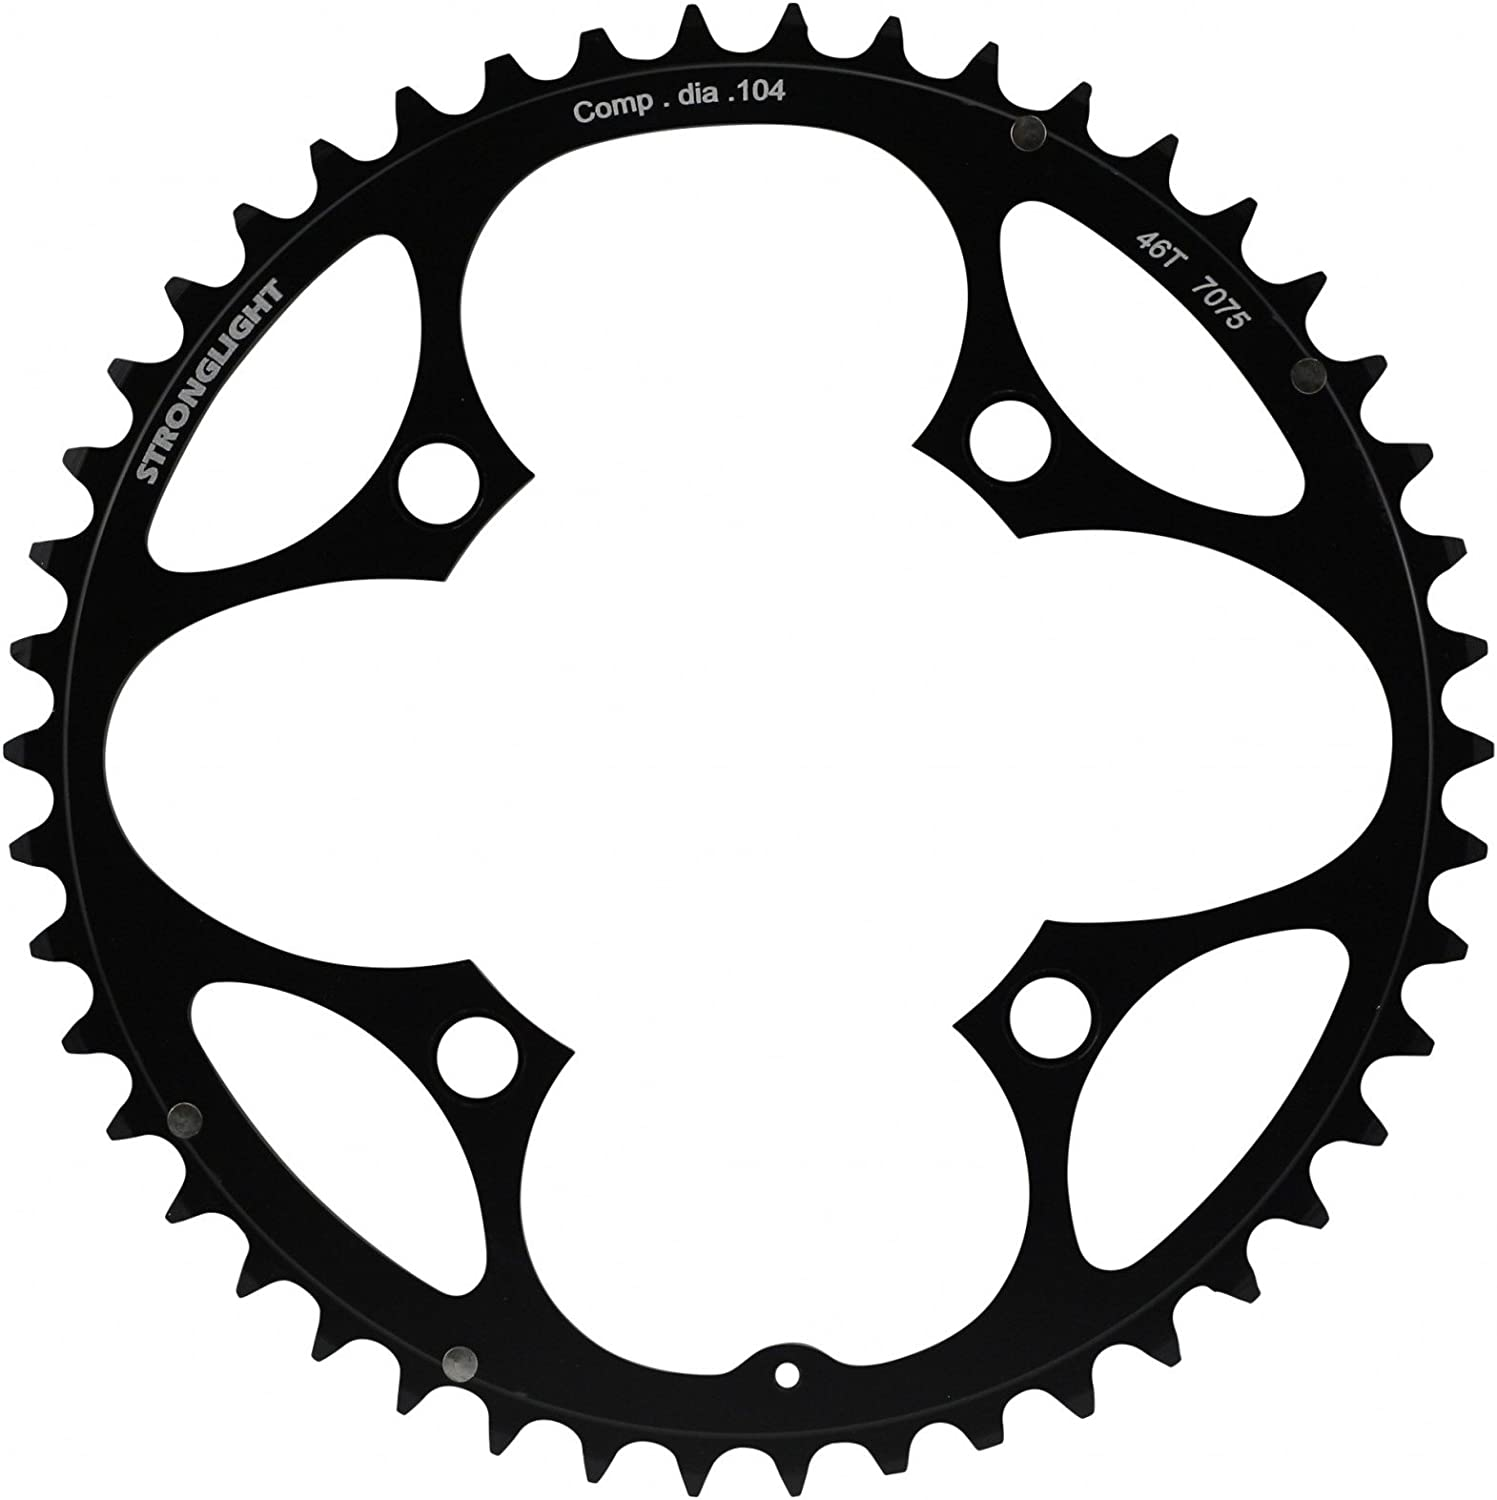 STRONGLIGHT chainring 4 arm 104mm bolt circle black various Sizes